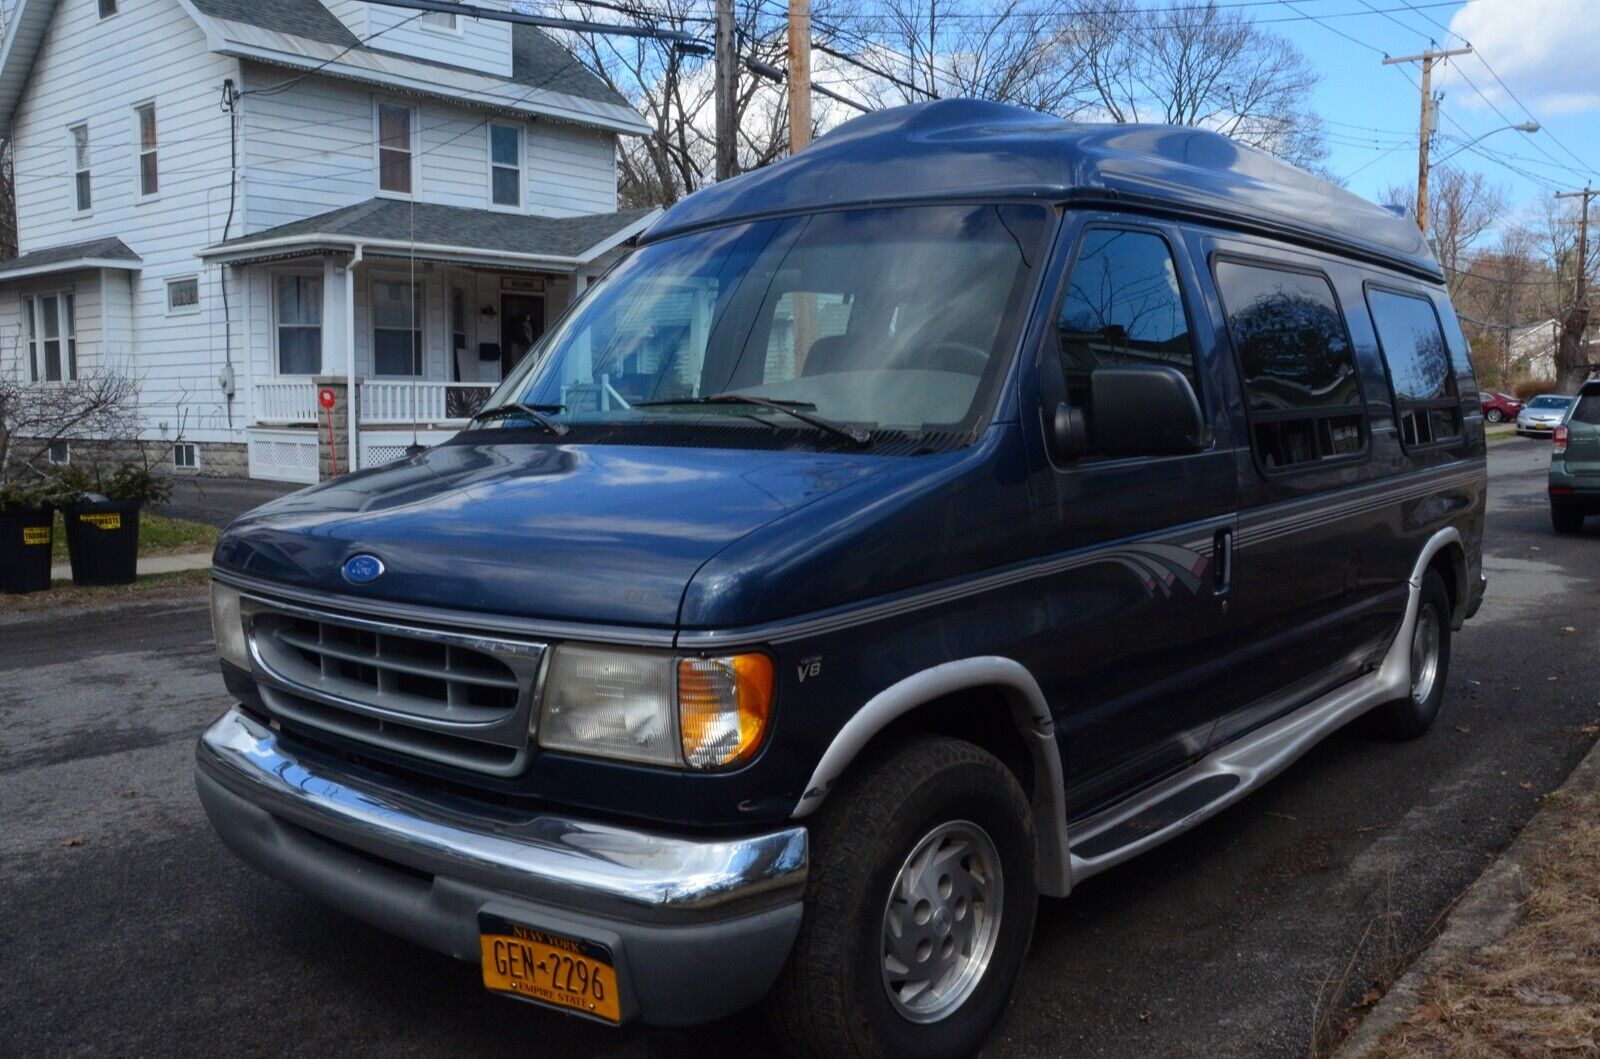 1997 Ford E150 Econoline Conversion Van for Parts or Rebuild Project Vehicle